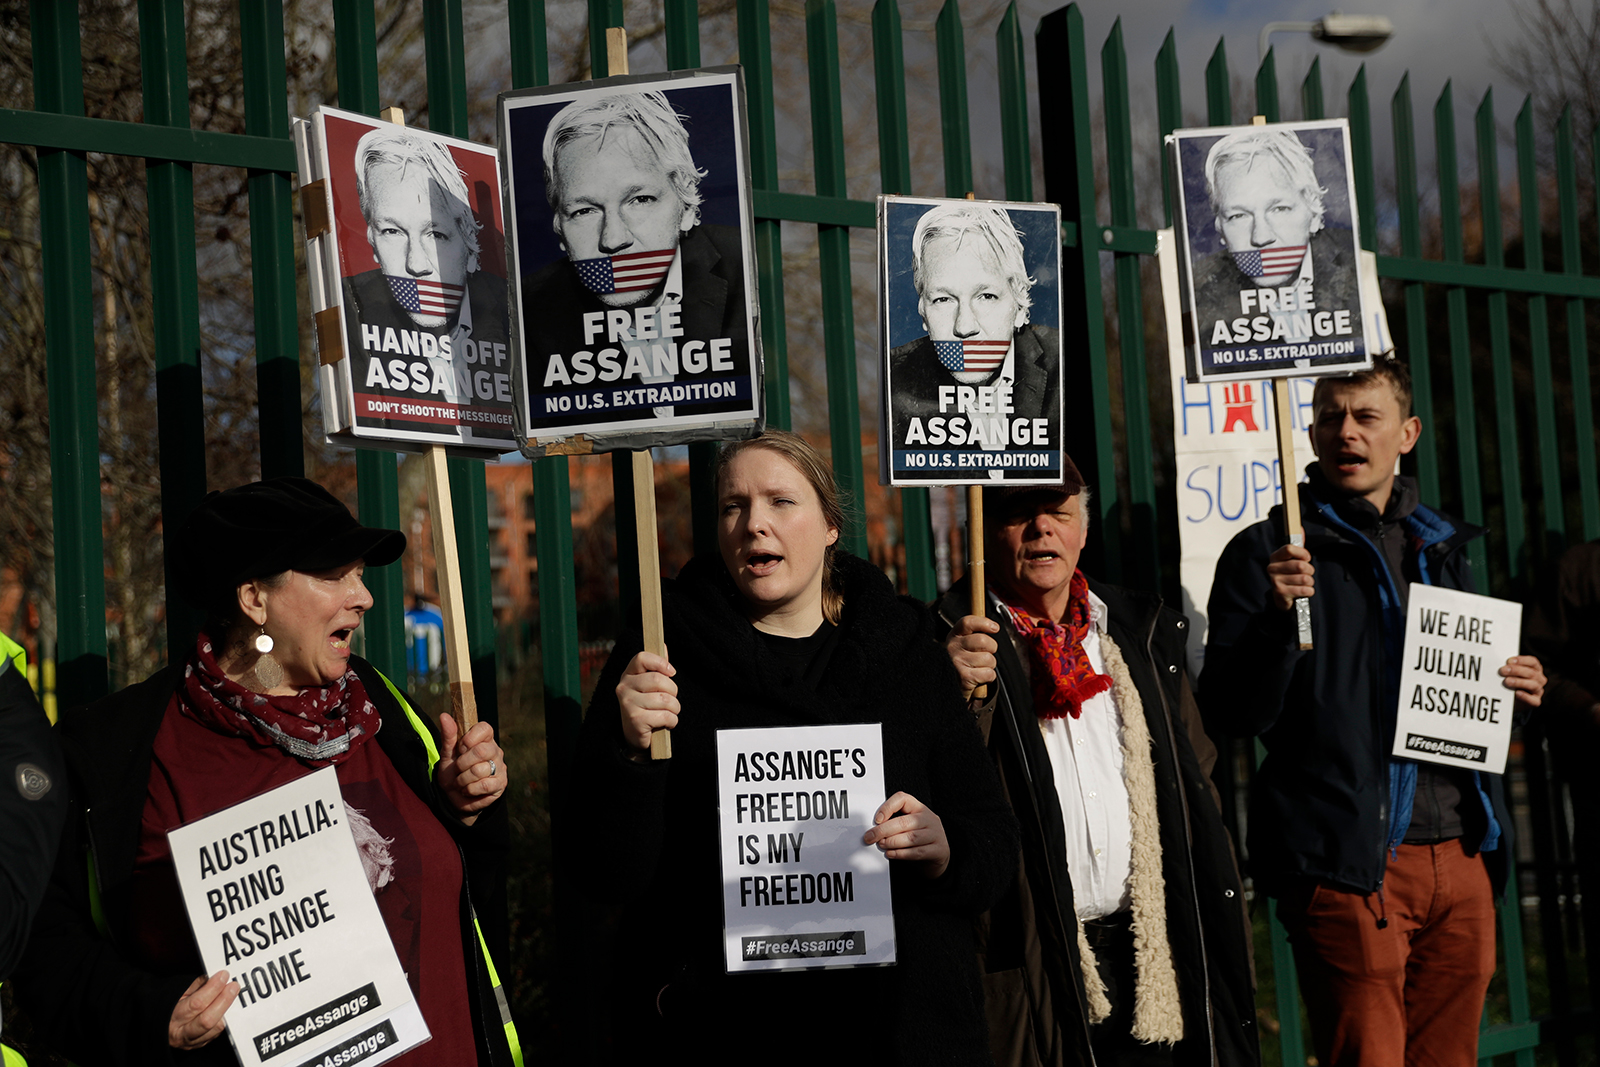 Supporters of Assange hold placards outside Belmarsh Magistrates' Court in southeast London in late February.